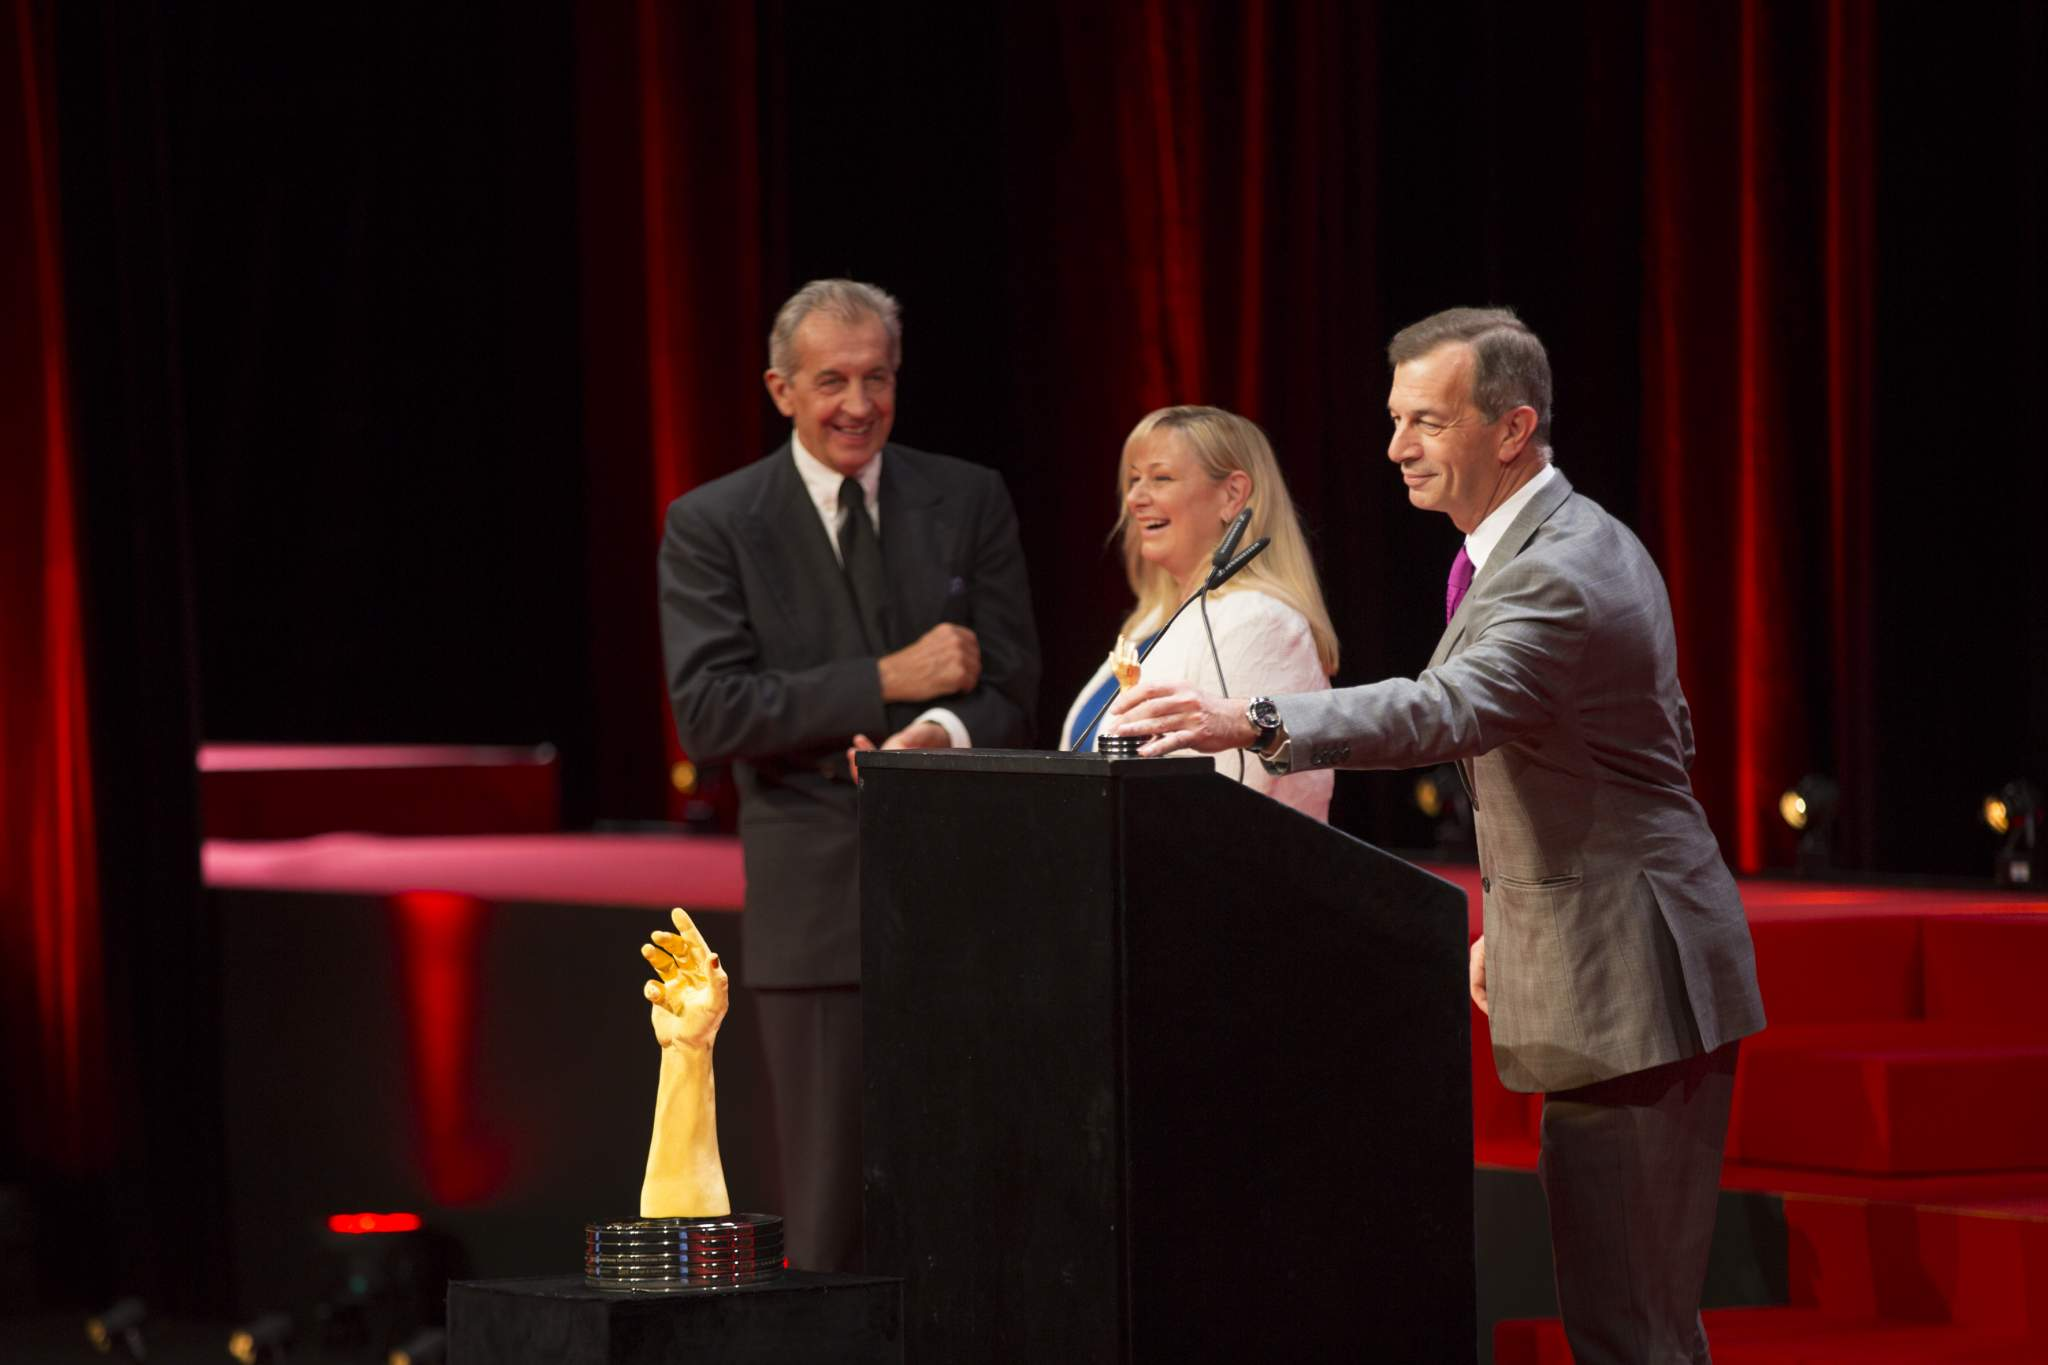 Gianfranco Ritschel, Elizabeth Doerr (jury members) and Philippe Léopold-Metzger (CEO of Piaget, winner of the Artistic Crafts Watch Prize 2016 and the Ladies' Watch Prize 2016)